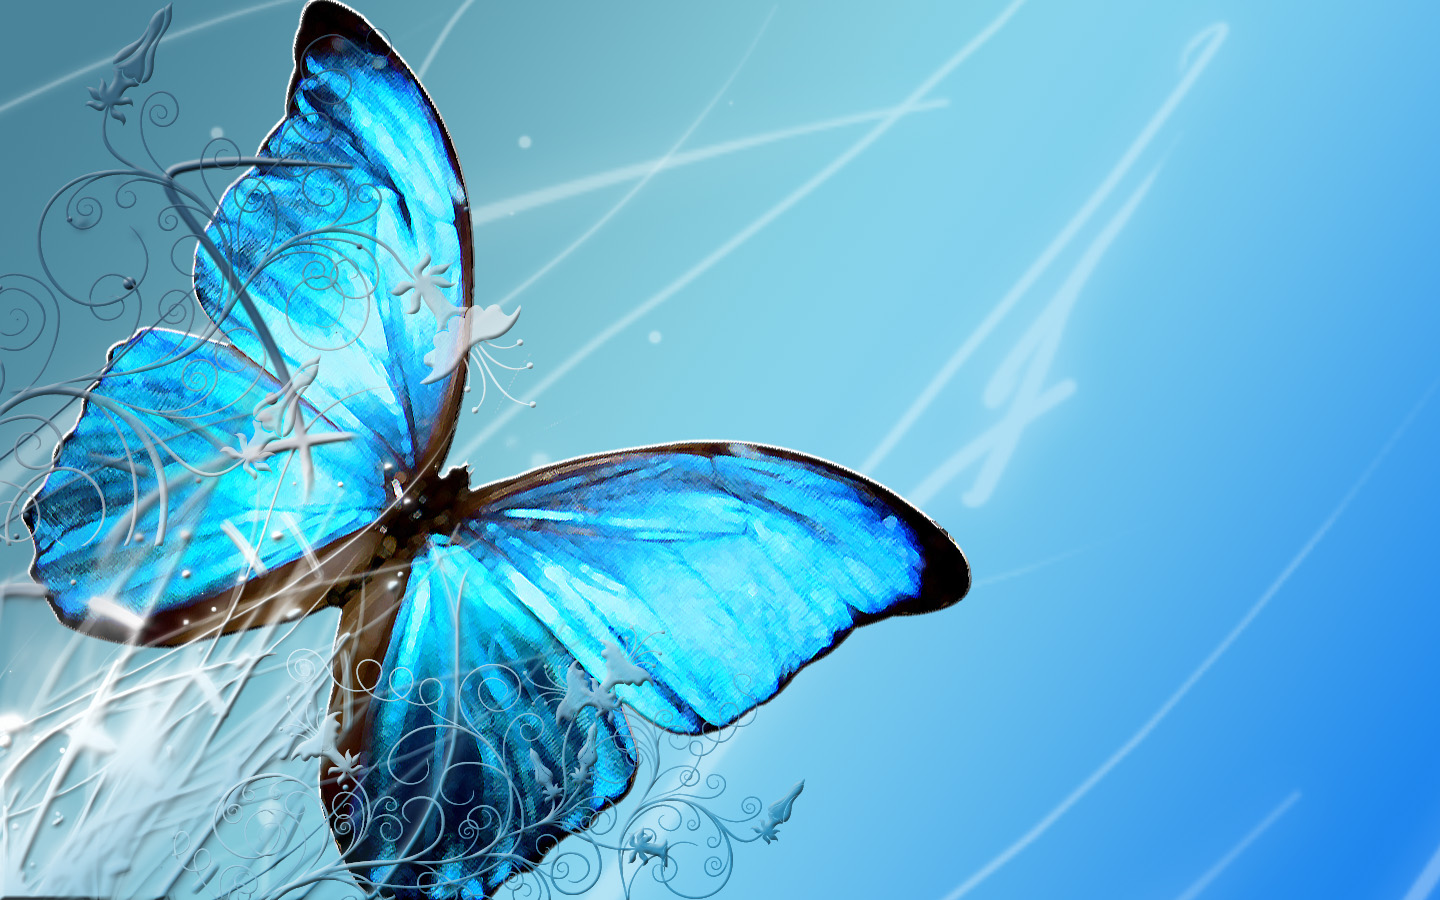 Blue Butterfly Wallpapers wallpaper Blue Butterfly Wallpapers hd 1440x900